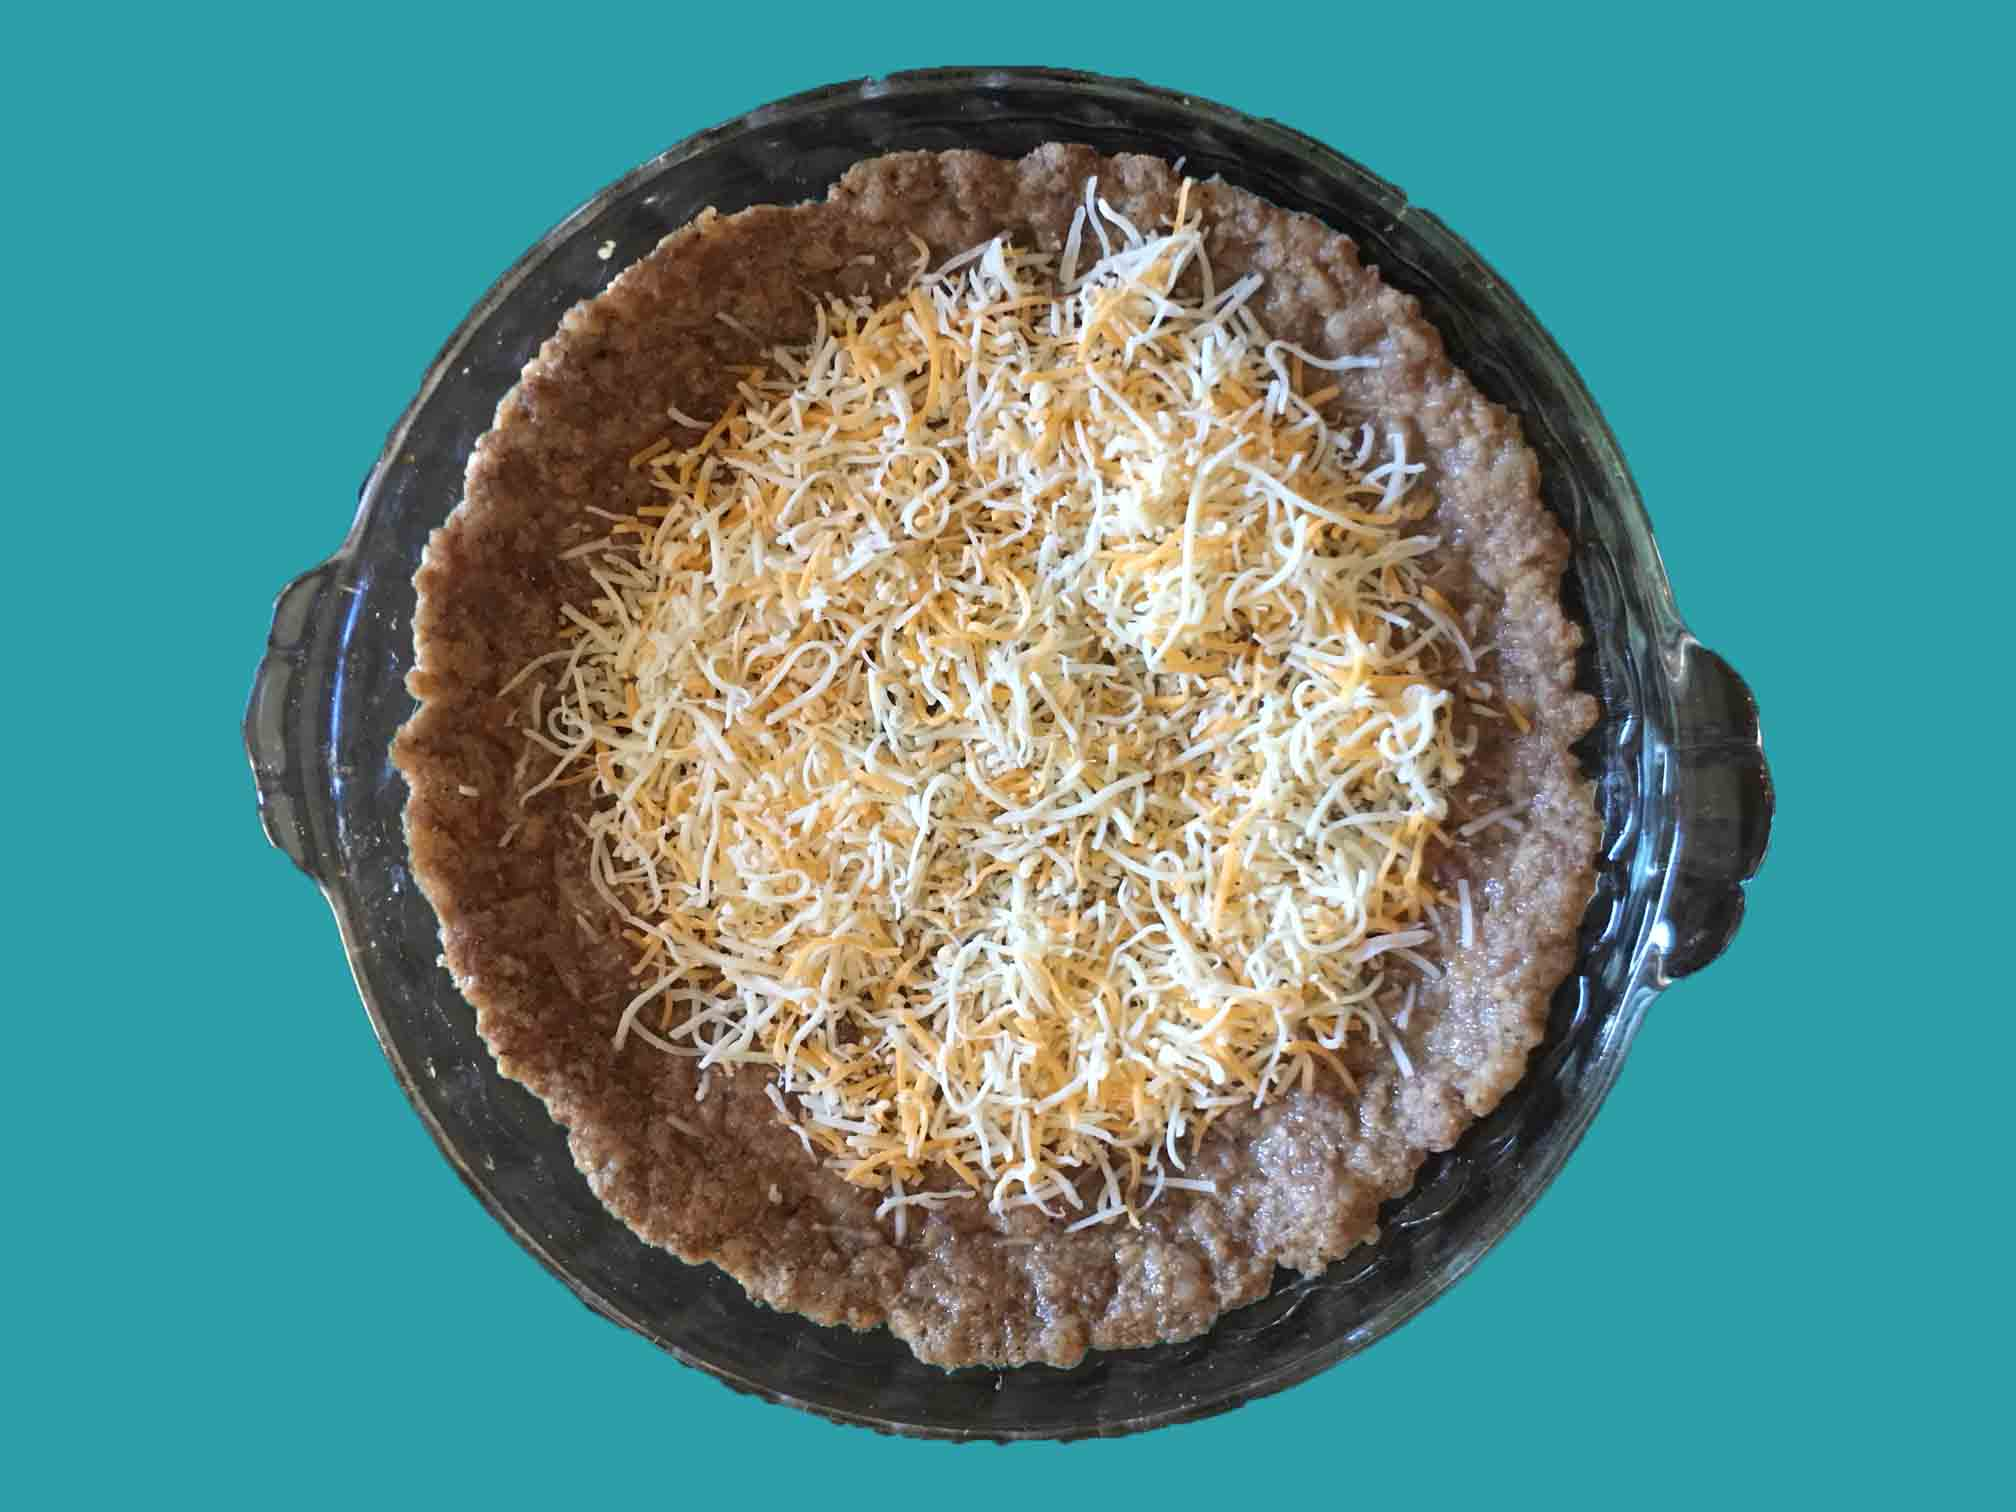 Add half of the cheese to the bottom of the pie crust evenly.